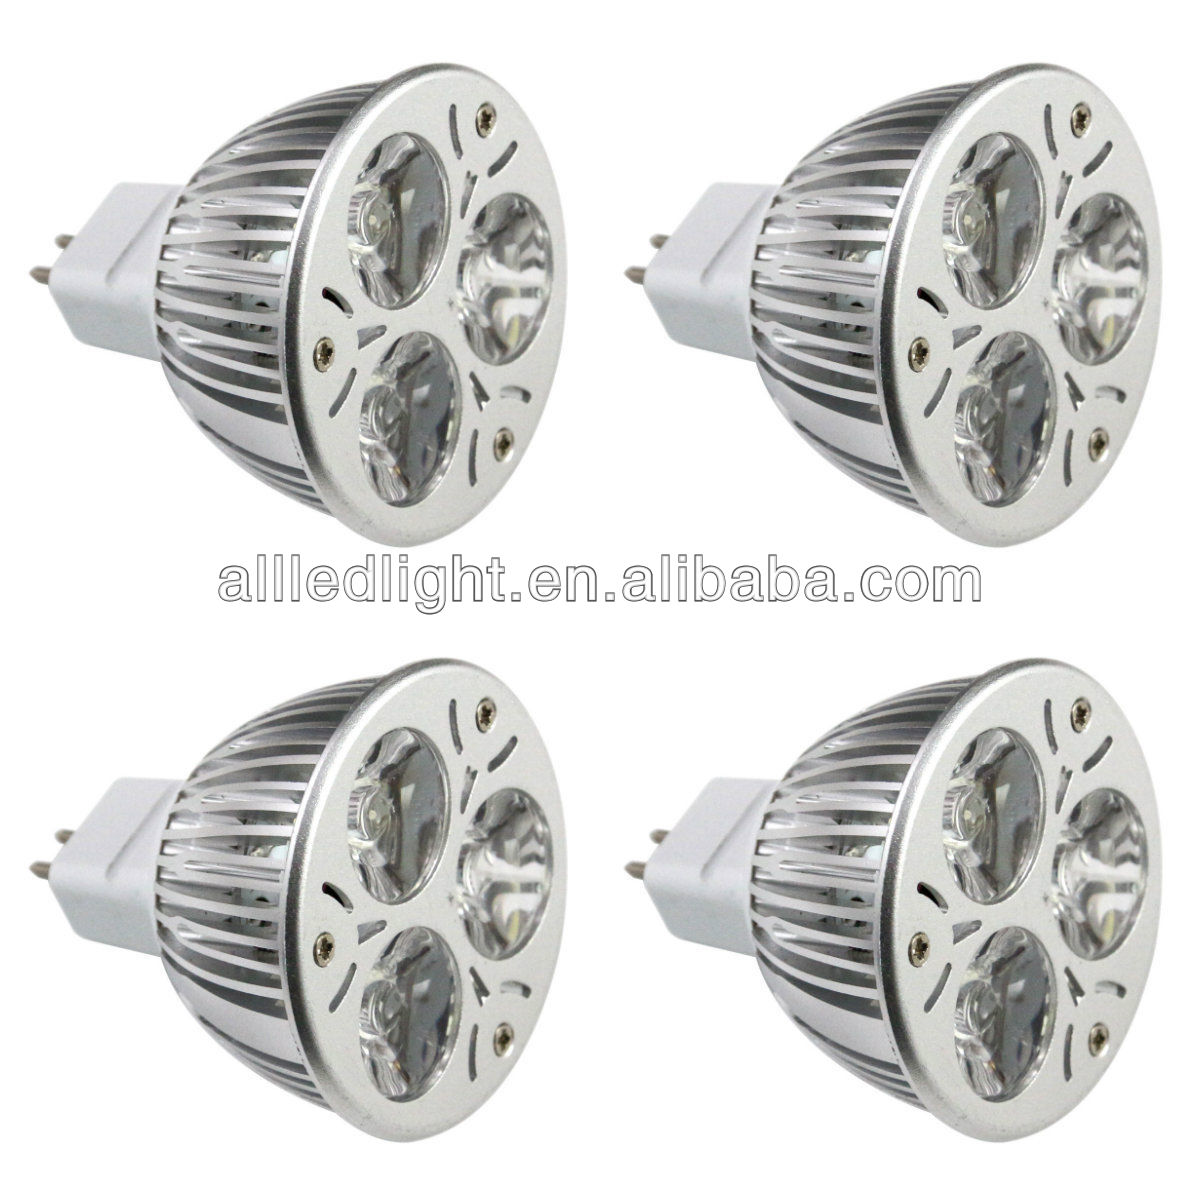 CE/RoHS approved MR16 LED Spot light